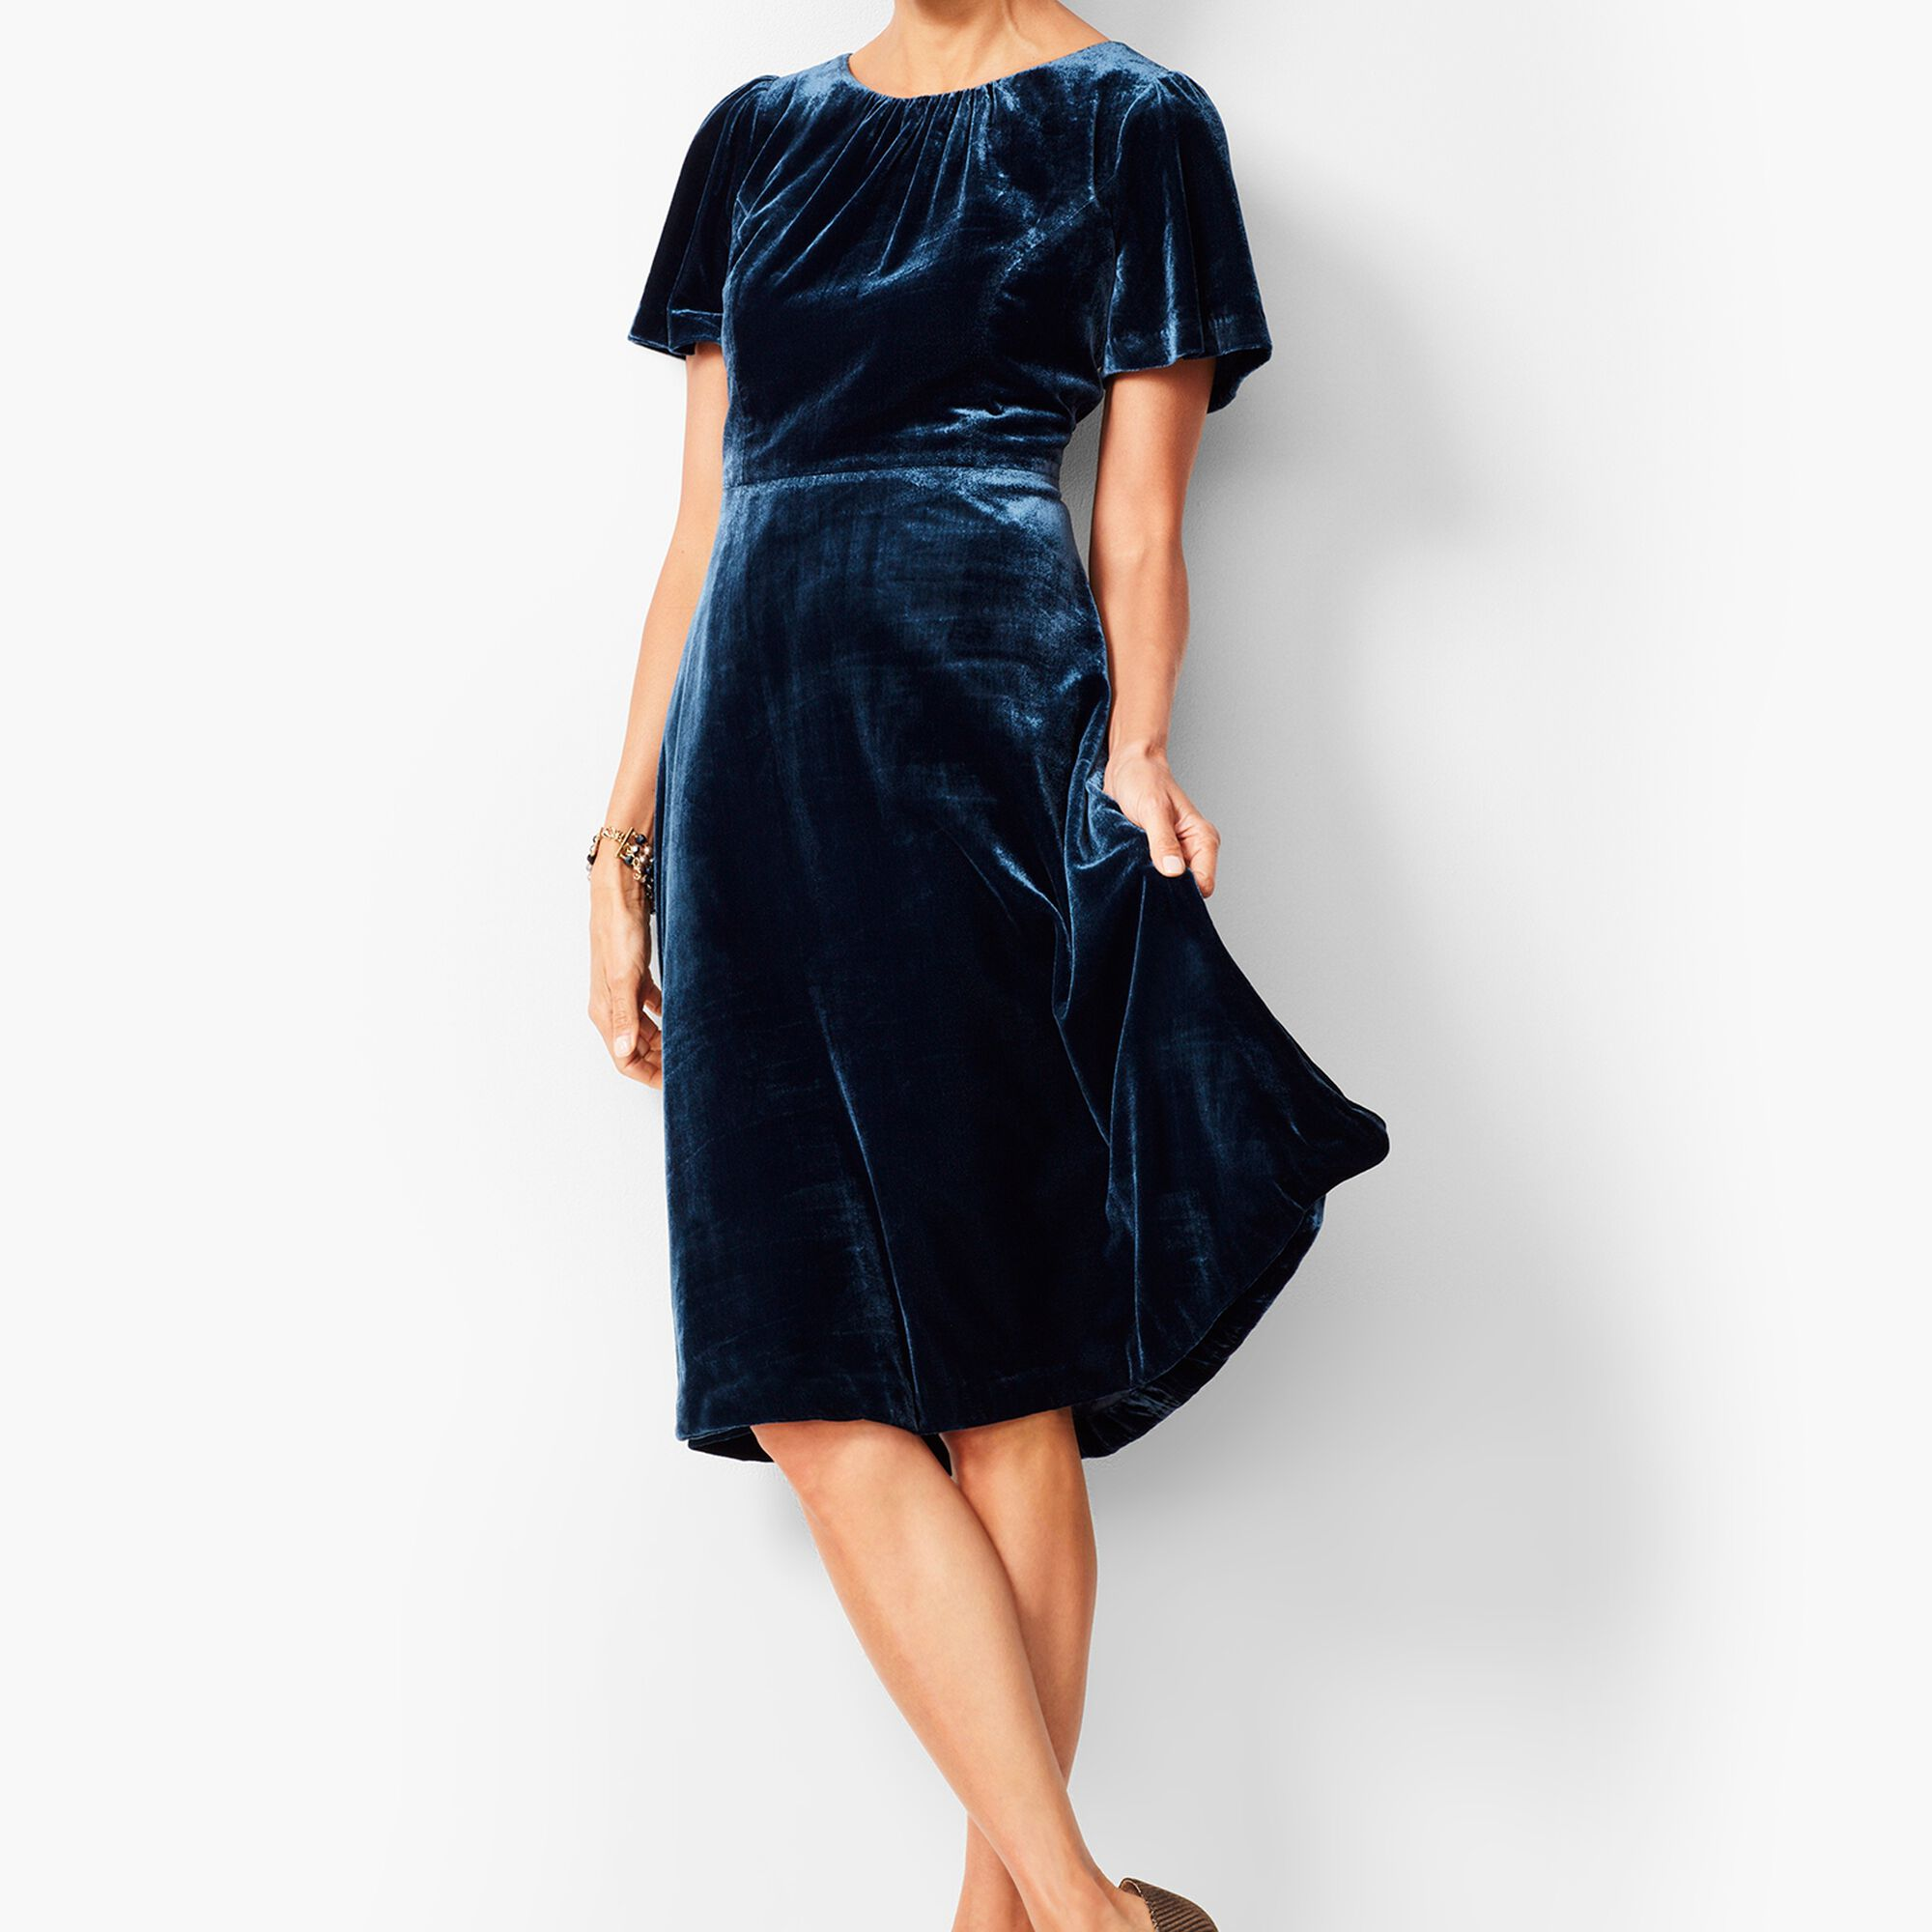 b1b4dfd04f0 Velvet Fit And Flare Dress - Dress Foto and Picture